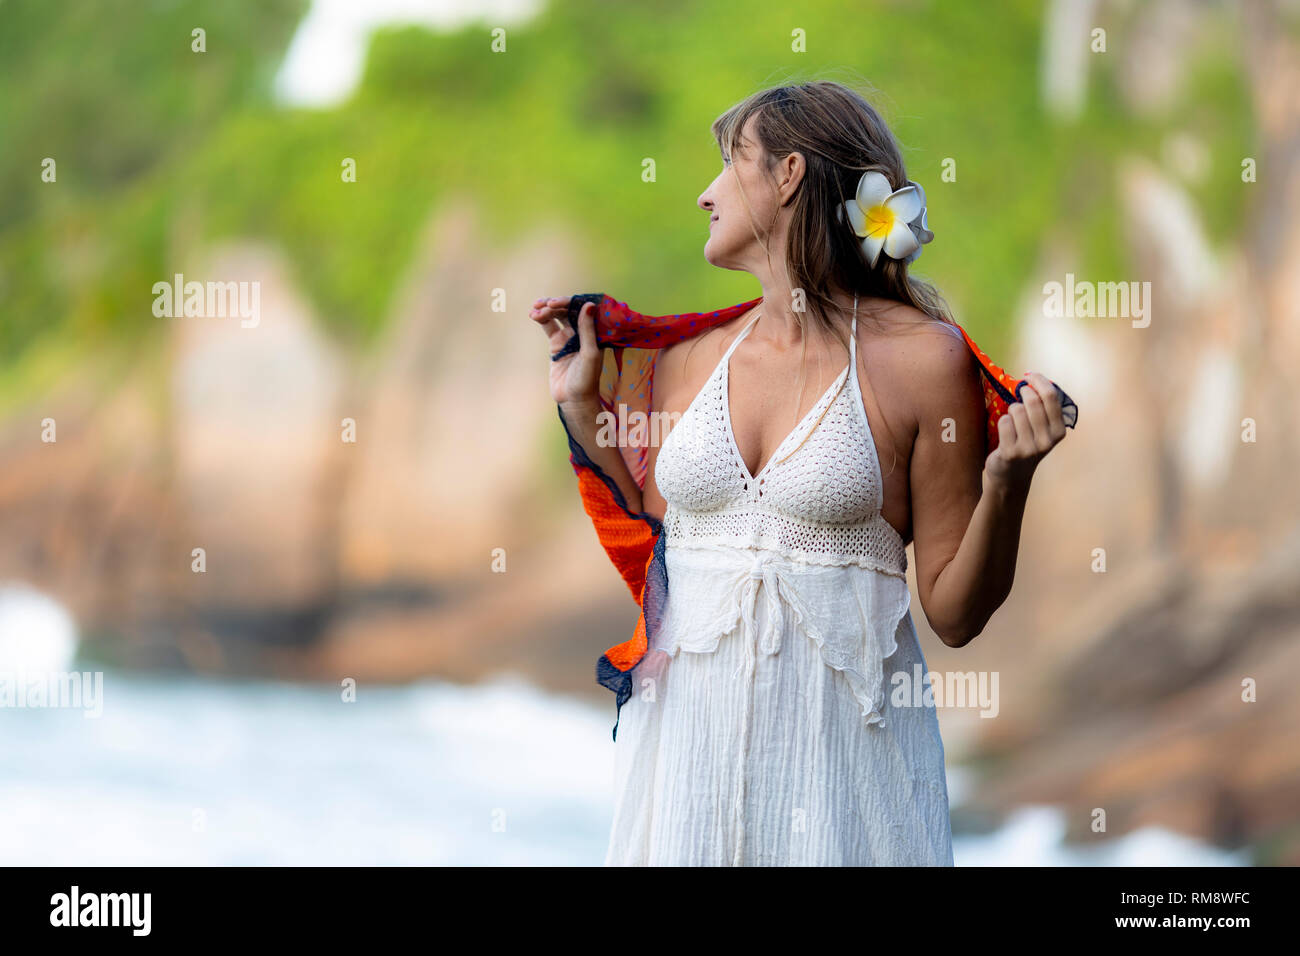 Beautiful slender Italian woman on a pointy rock with the waves coming in on the rocky beach in the background - Stock Image